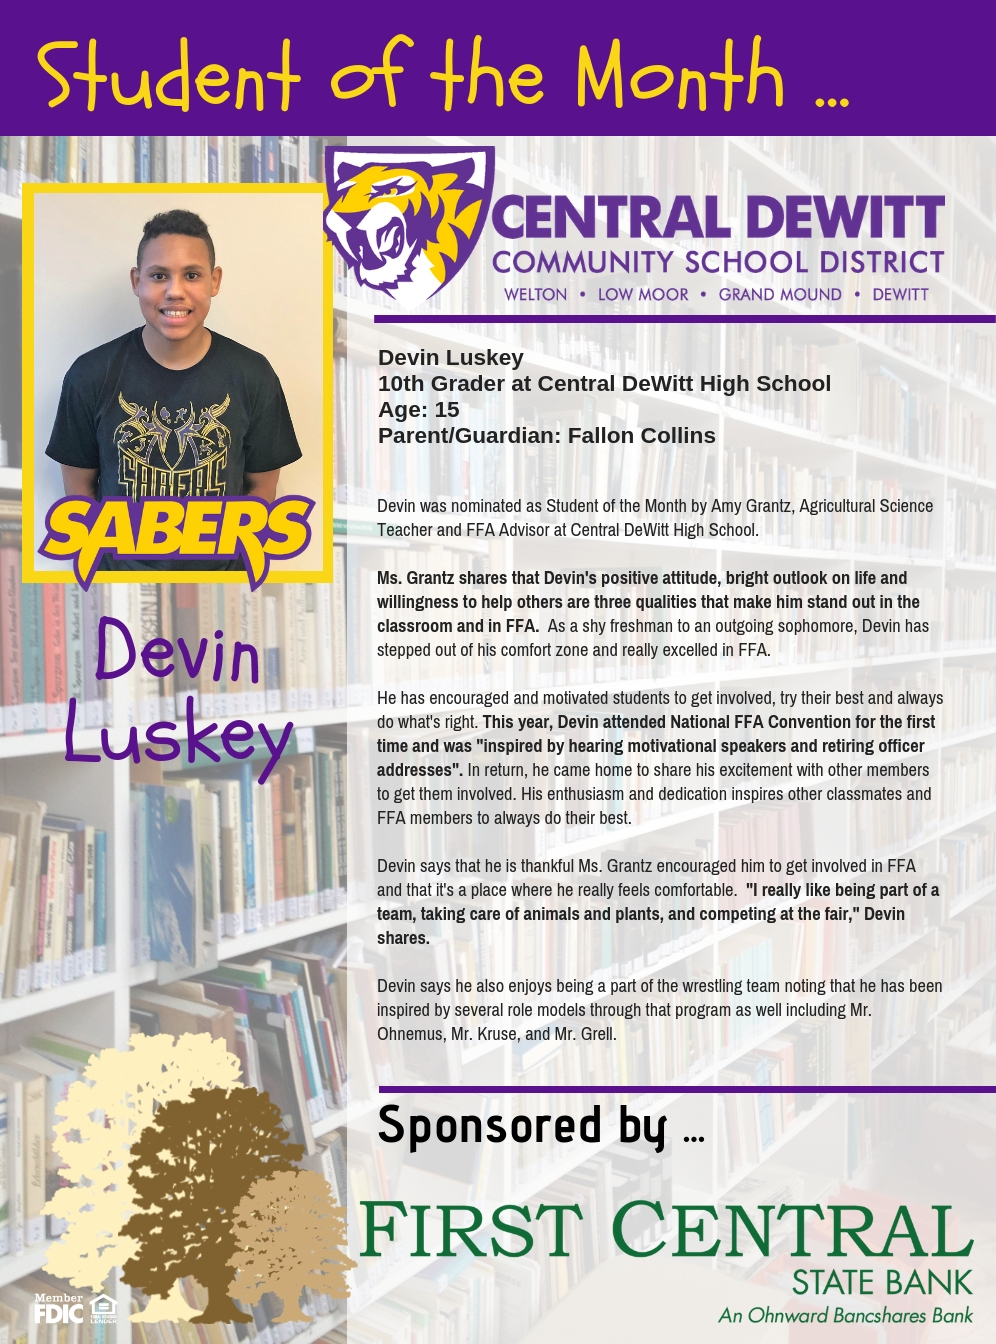 Devin Luskey recognized as student of the month